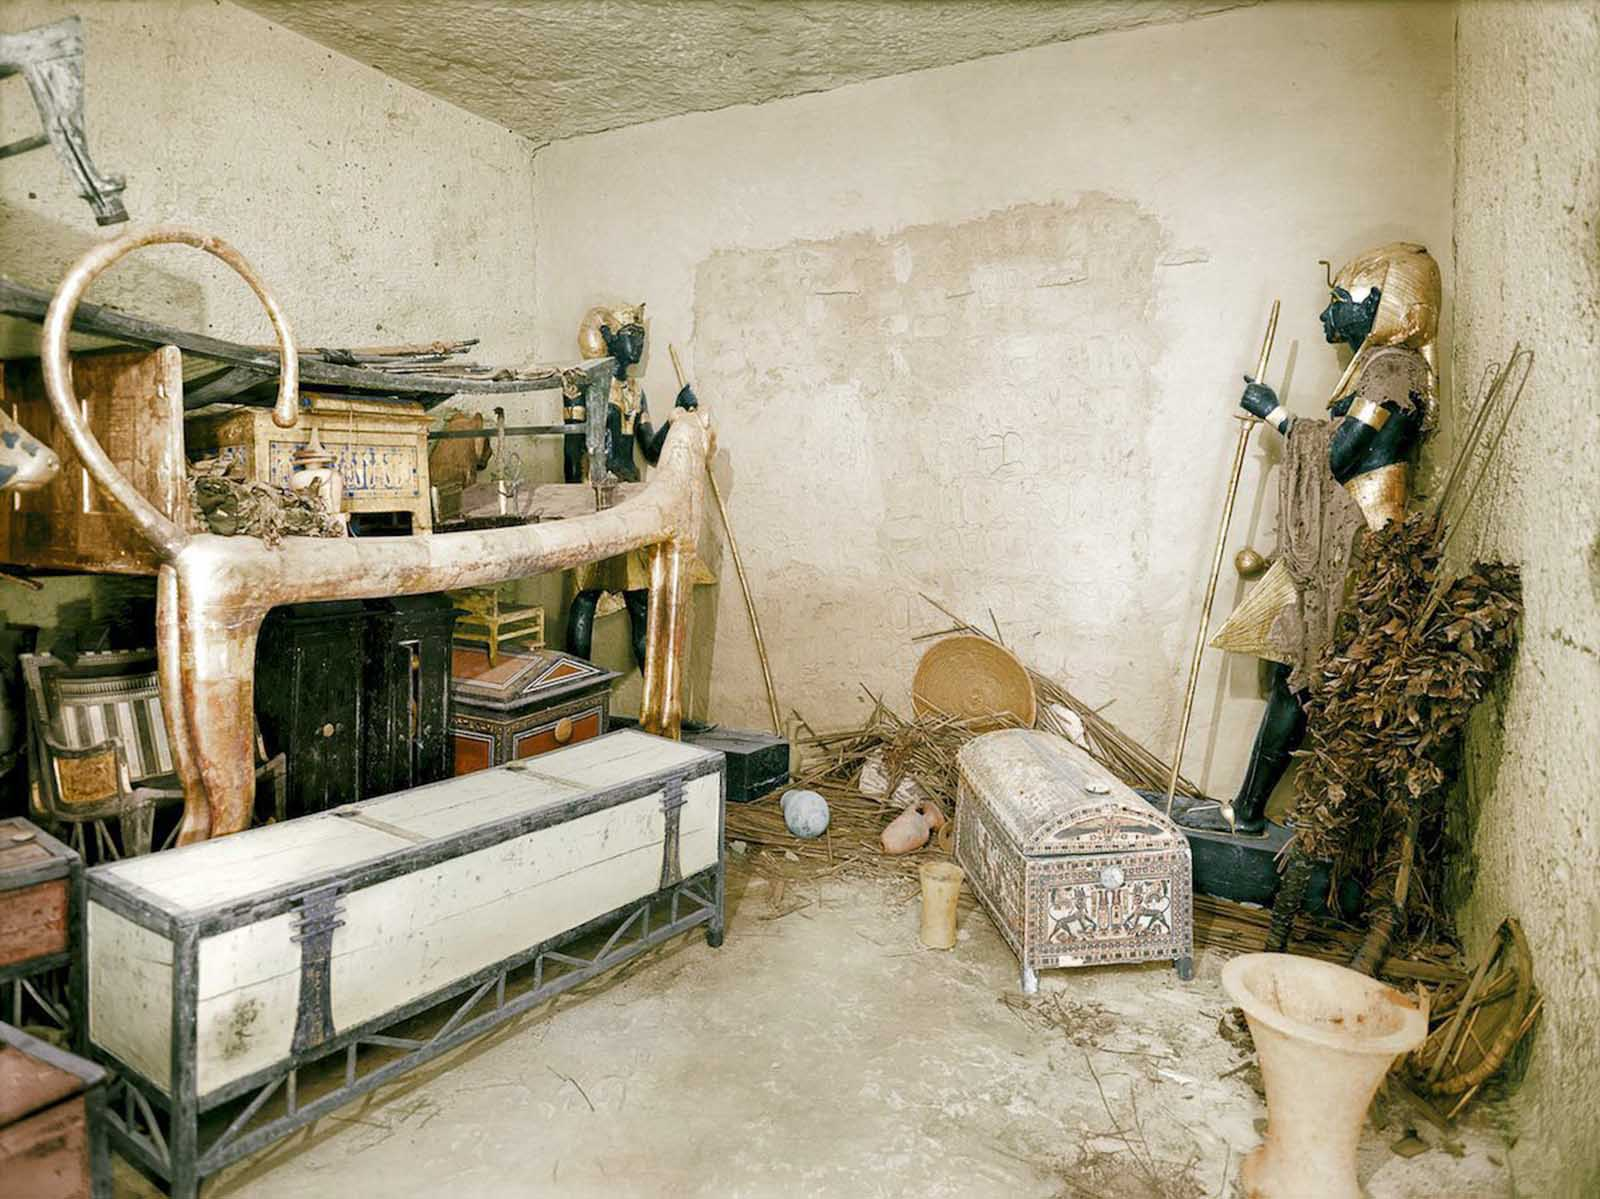 A gilded lion bed, clothes chest and other objects in the antechamber. The wall of the burial chamber is guarded by statues.